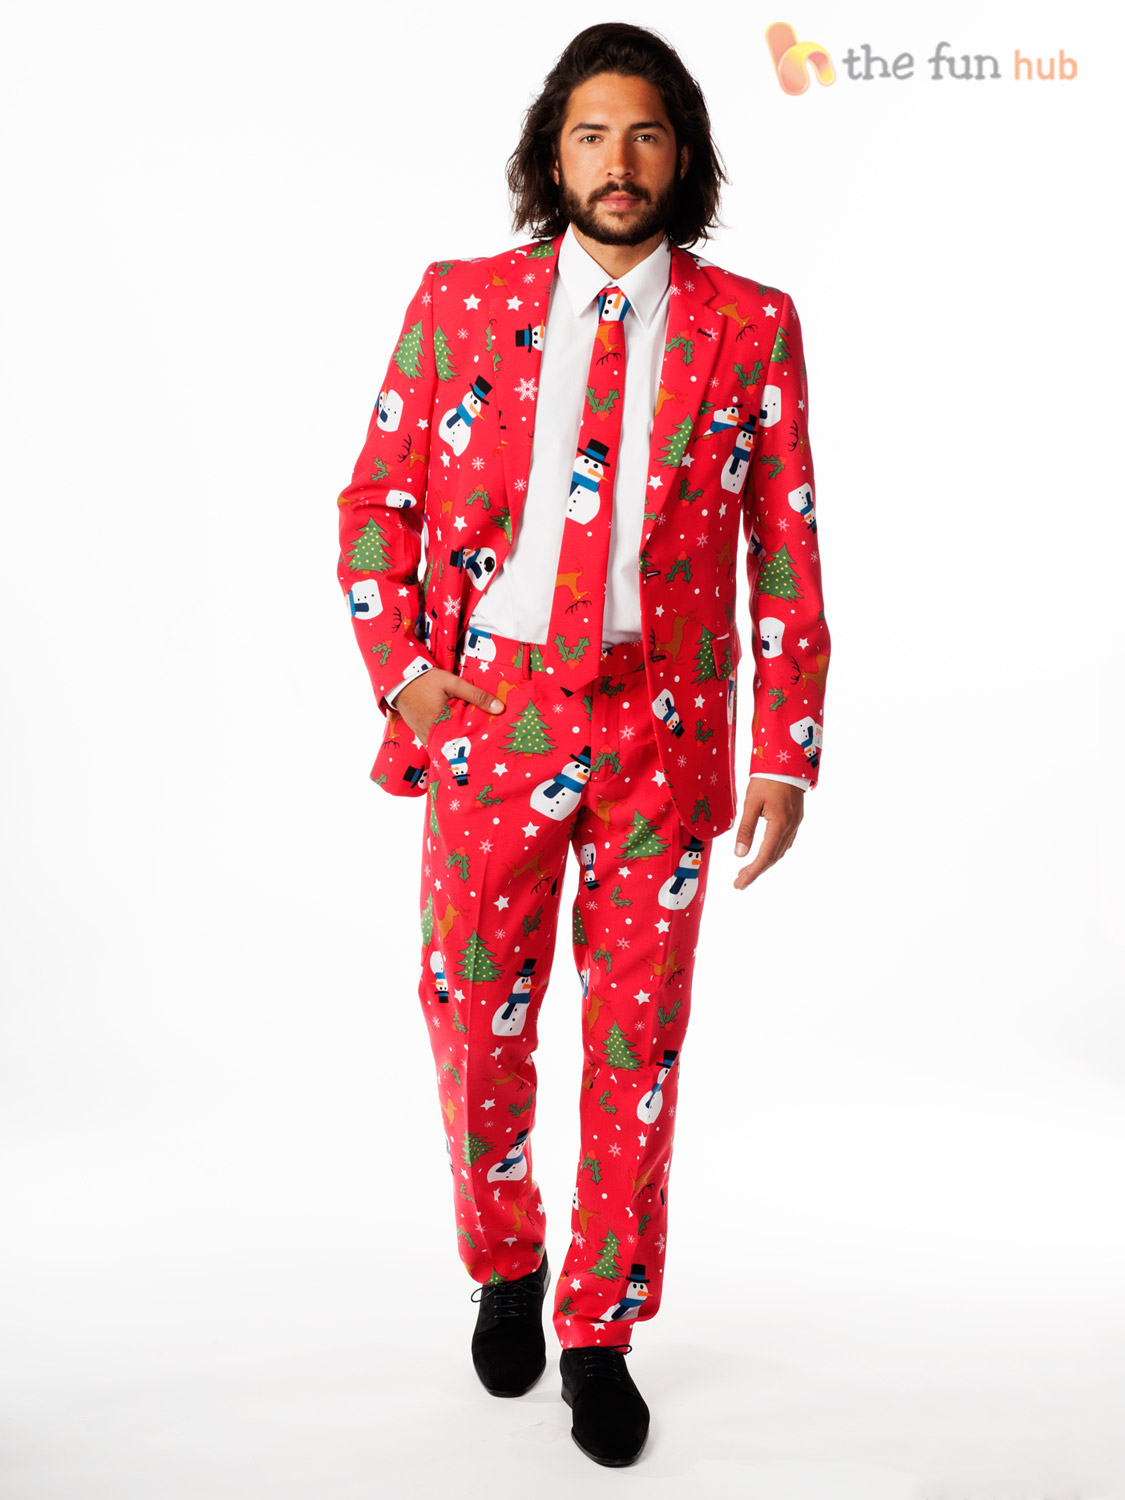 mens christmas opposuit adults xmas party oppo suit - Christmas Clothes For Adults